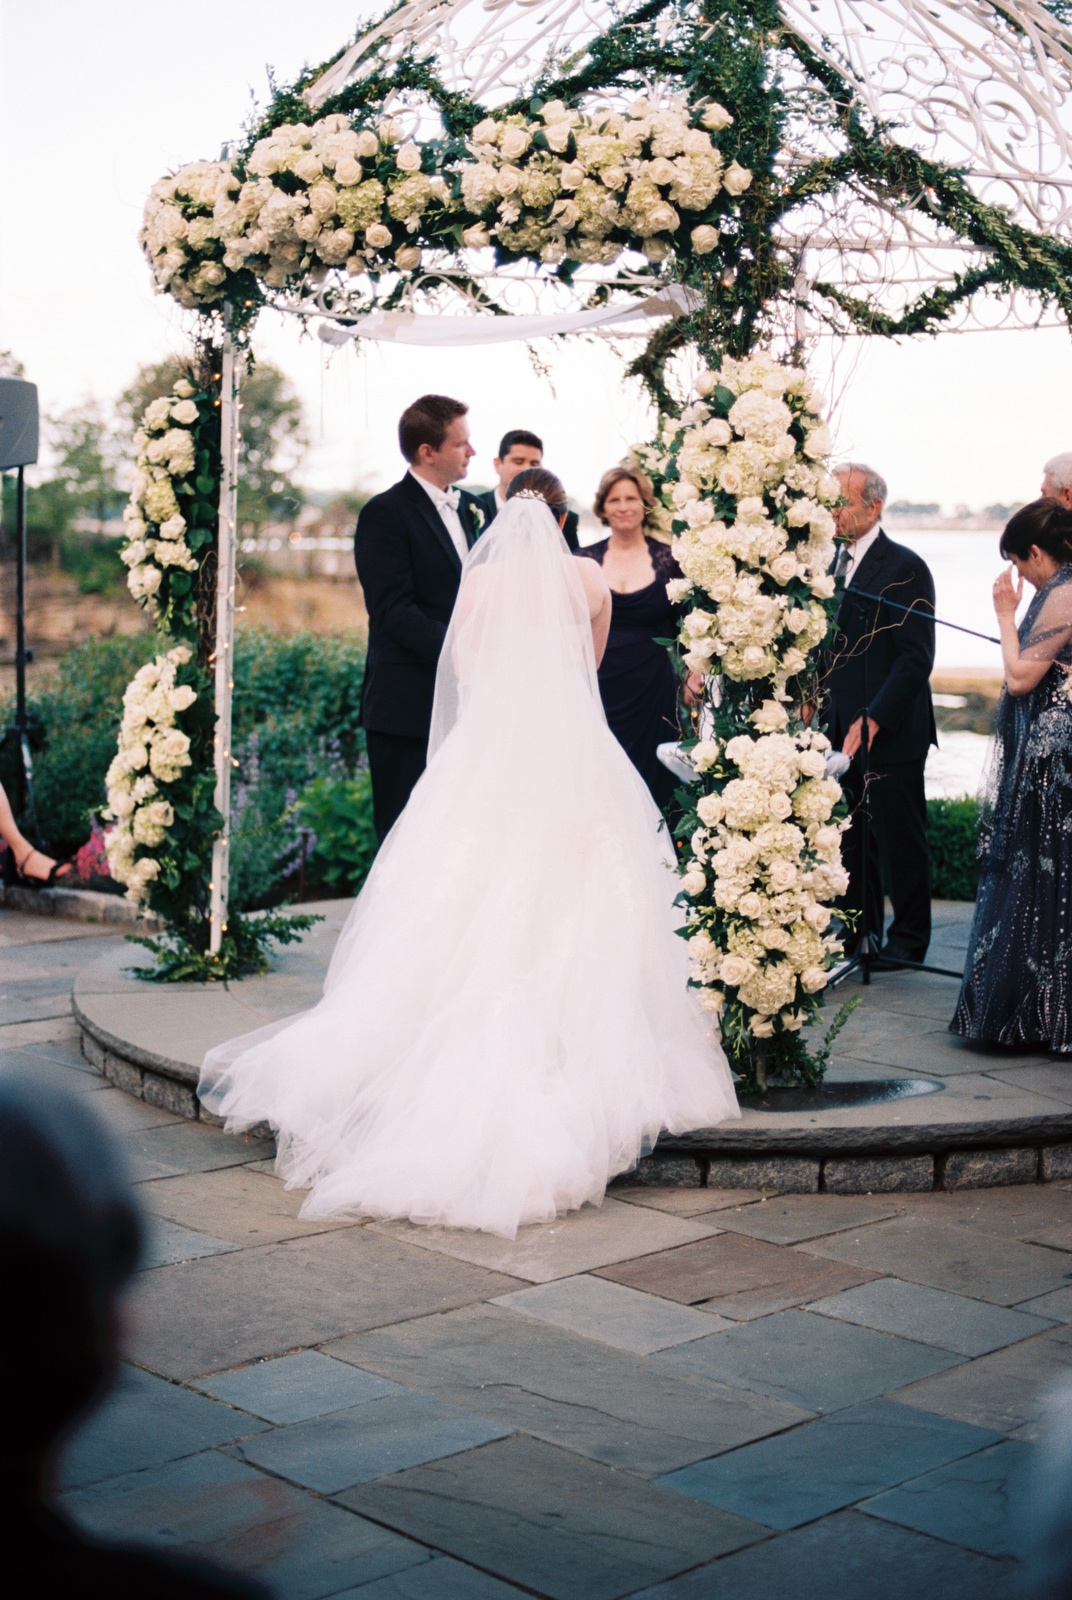 mamaroneck beach yacht club outdoor wedding ceremony by wendy g photography